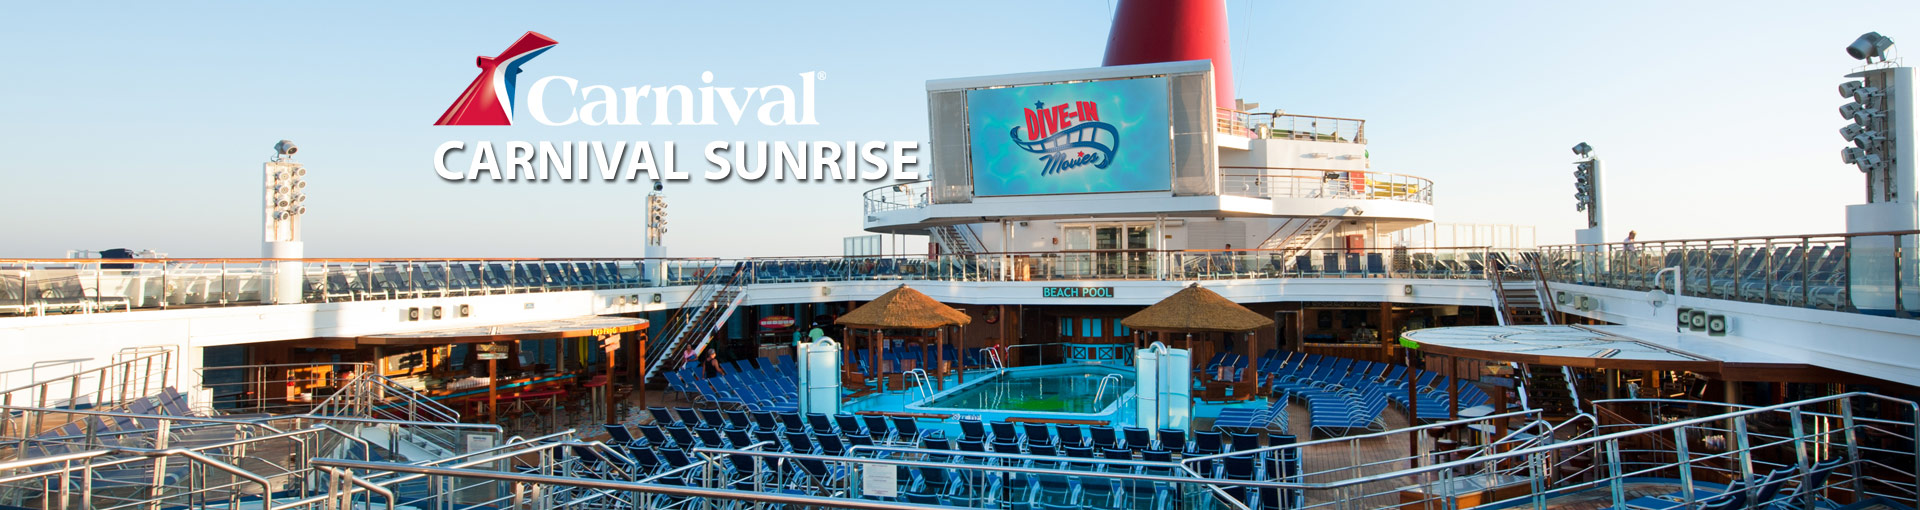 Banner for Carnival Sunrise cruise ship